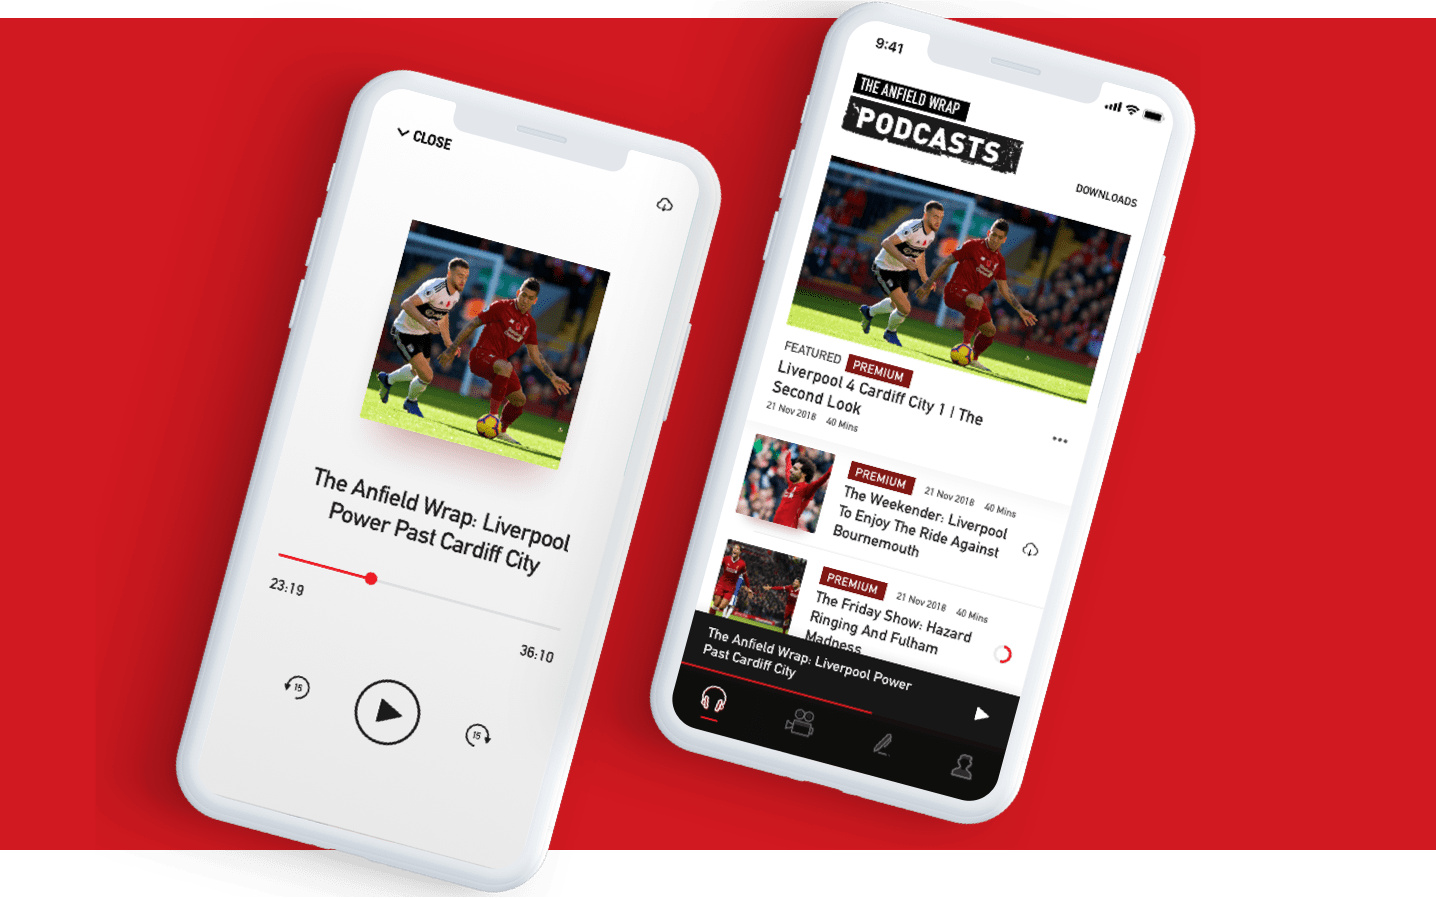 The Anfield Wrap screens showing custom podcast player and podcast feed